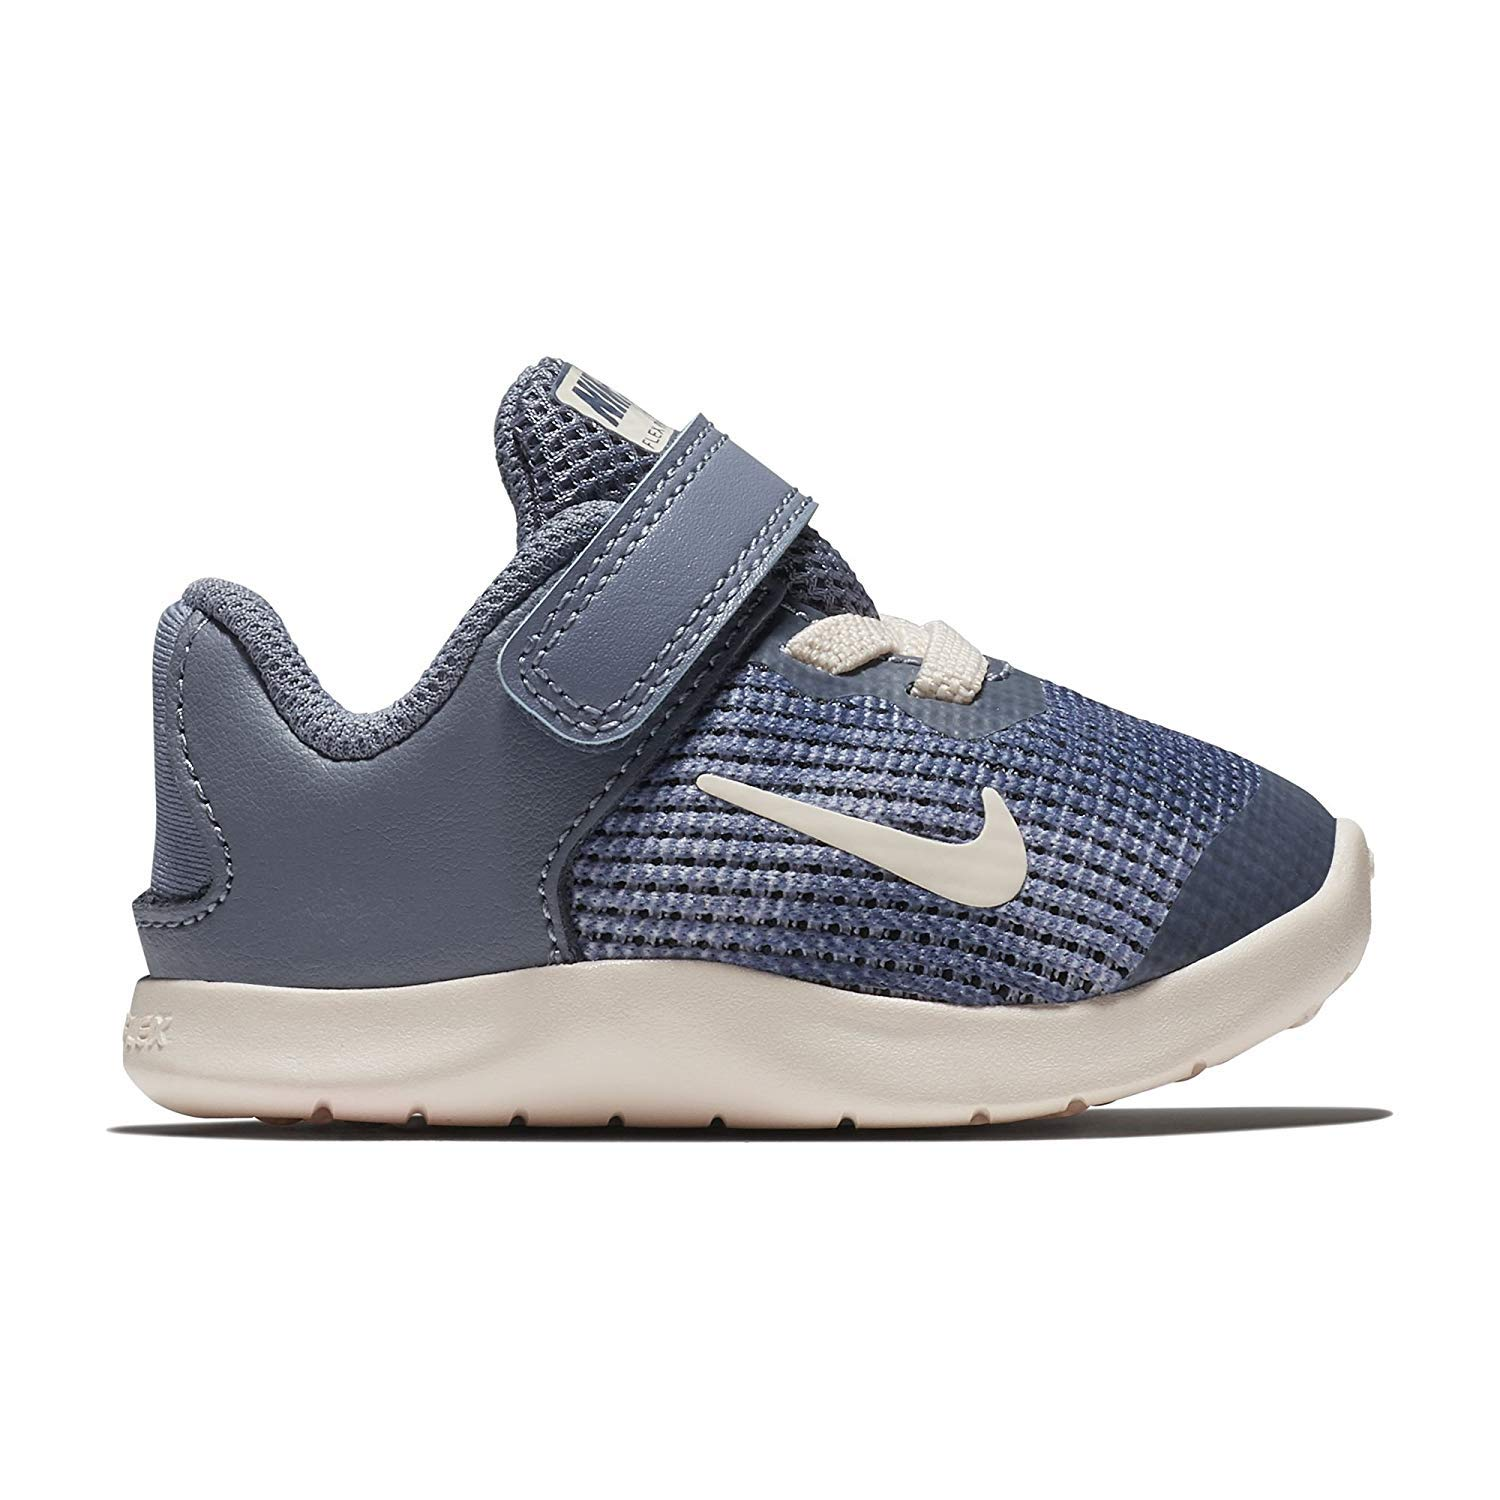 59af3cc86cffe Amazon.com | Nike Girl's Flex RN 2018 Toddler Shoe Ashen Slate/Guava  Ice/Diffuse Blue Size 5 M US | Fashion Sneakers